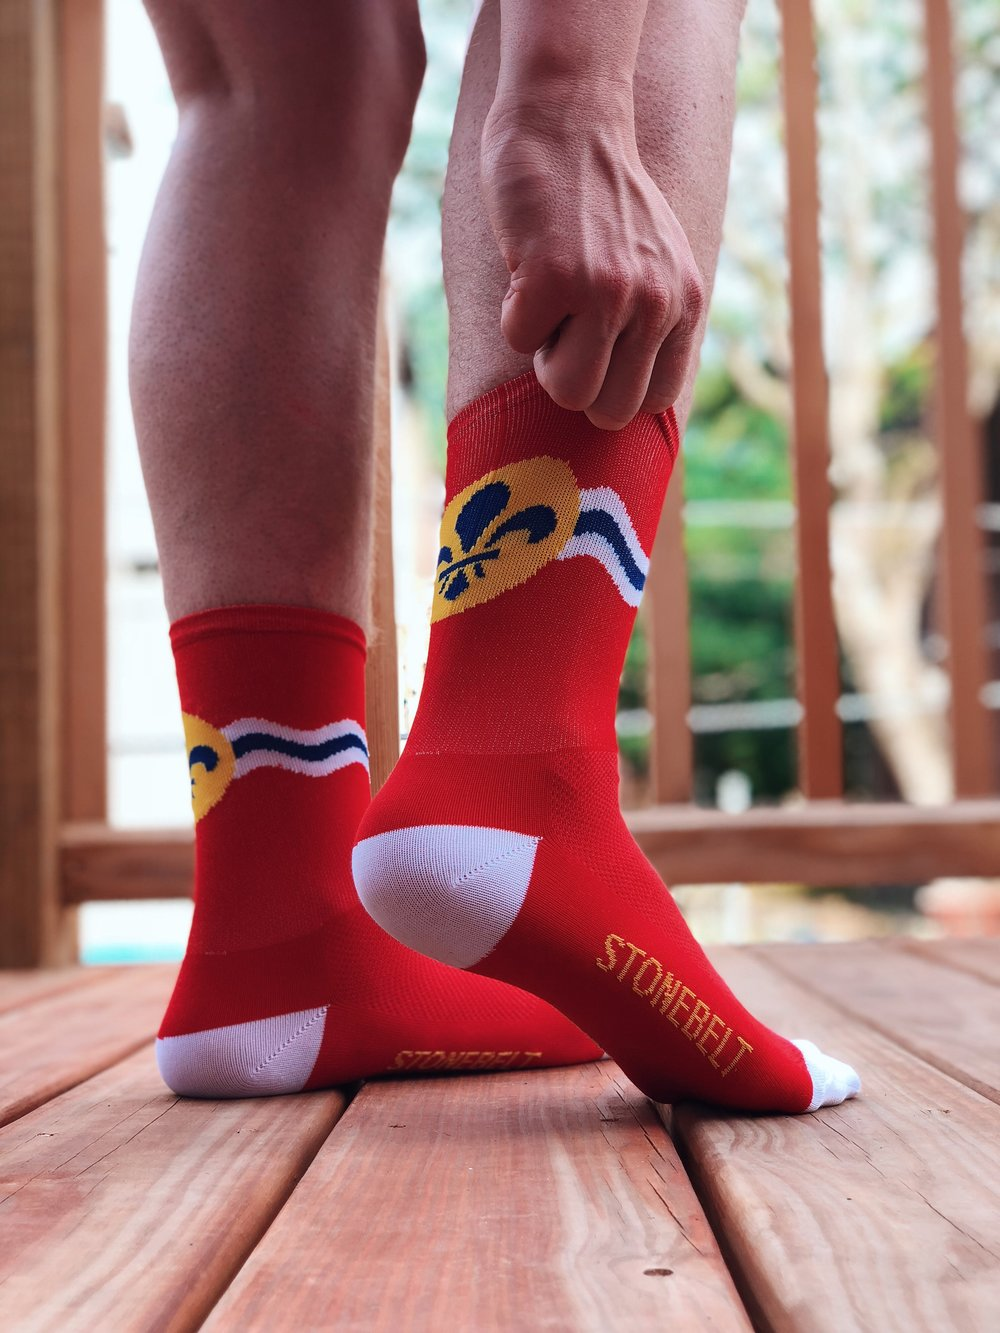 Our Mission - Stonebelt Supply exists for two reasons. The first is to make your feet a little more fun. The second is to help benefit adults and children with special needs. Every sock purchase you make will do both - help you brighten up your hooves, and donate 10% of your purchase to camps for special needs.Learn More